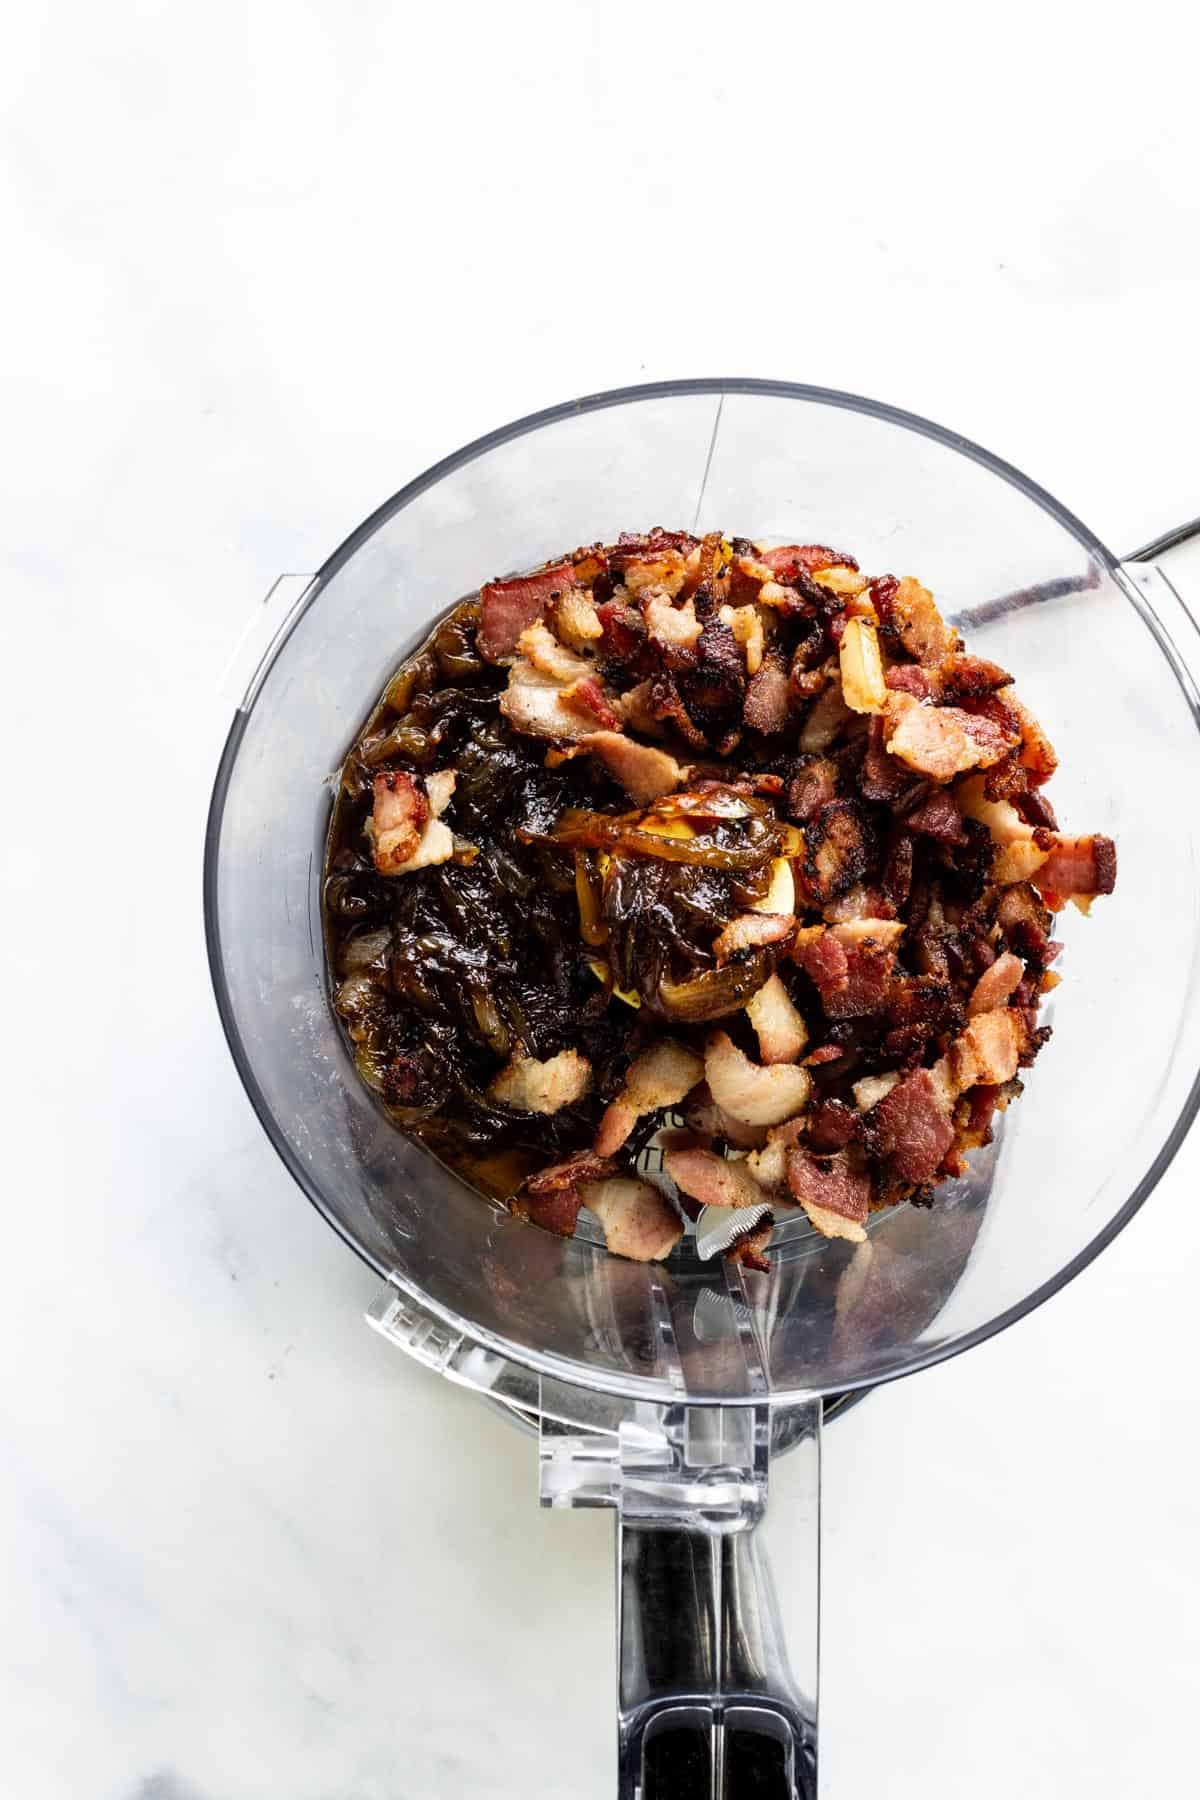 The ingredients for bacon jam are placed in a food processor after they have finished cooking.